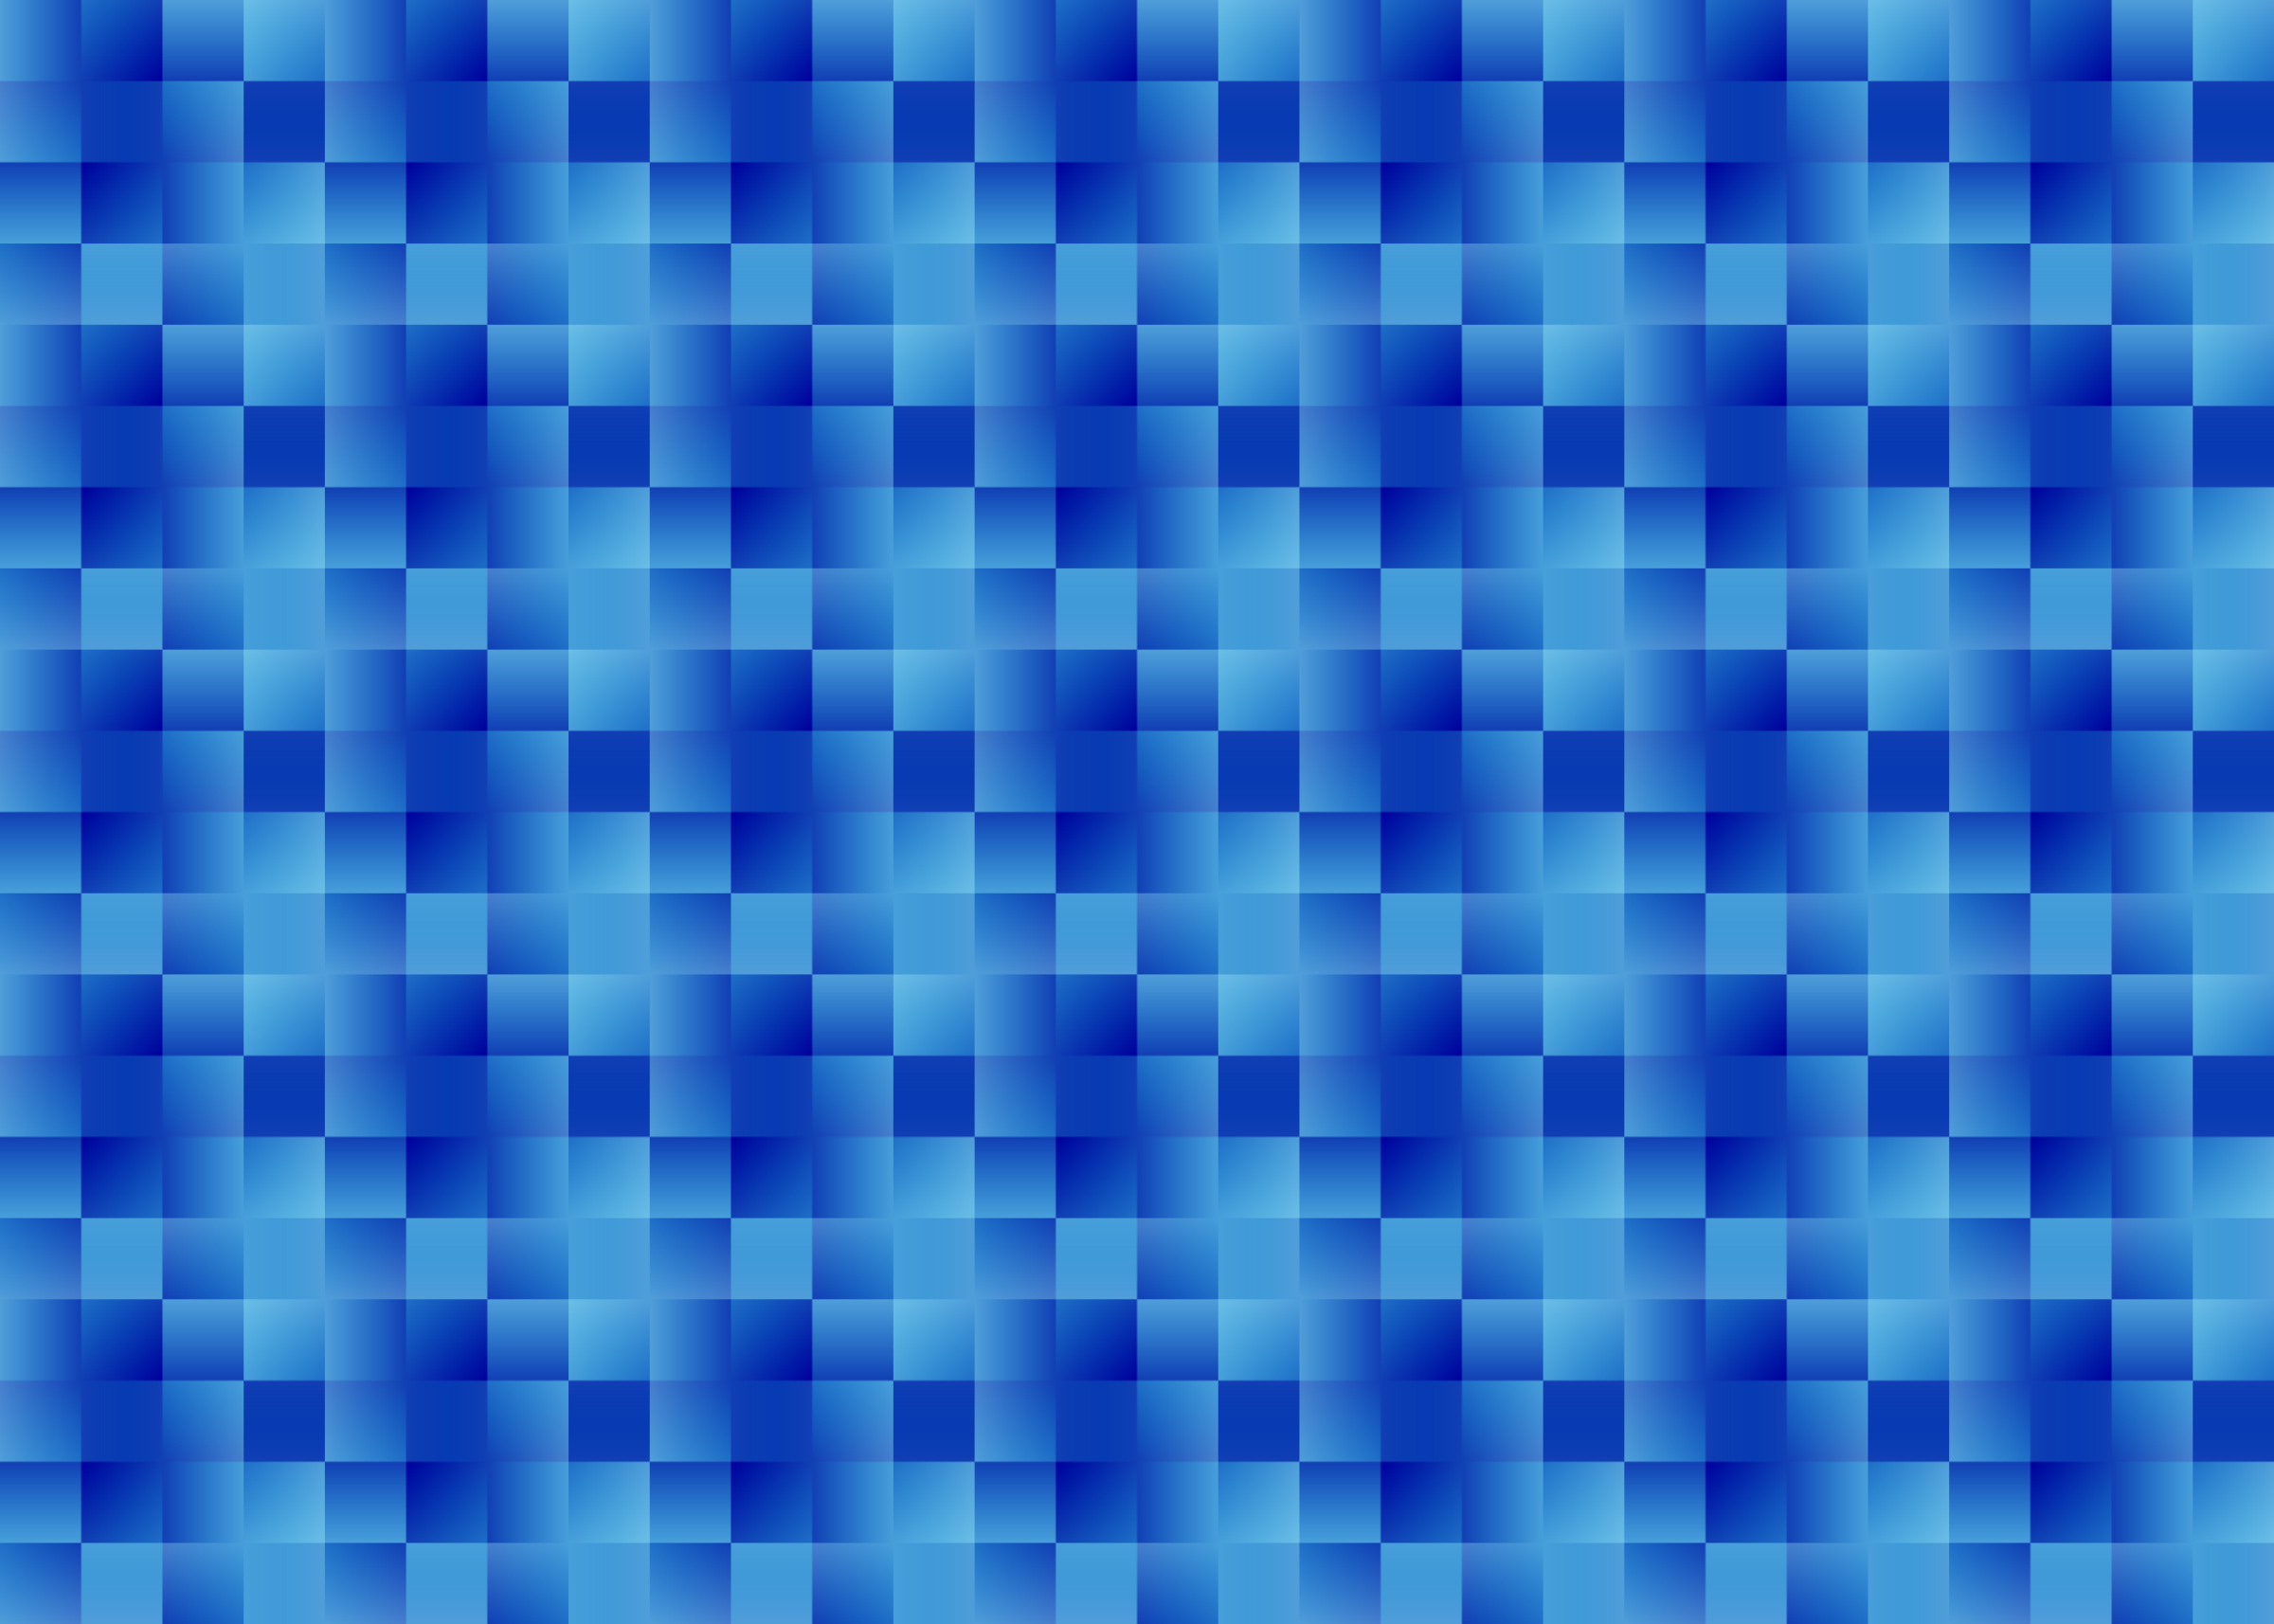 Background pattern 251 (colour 4) by Firkin